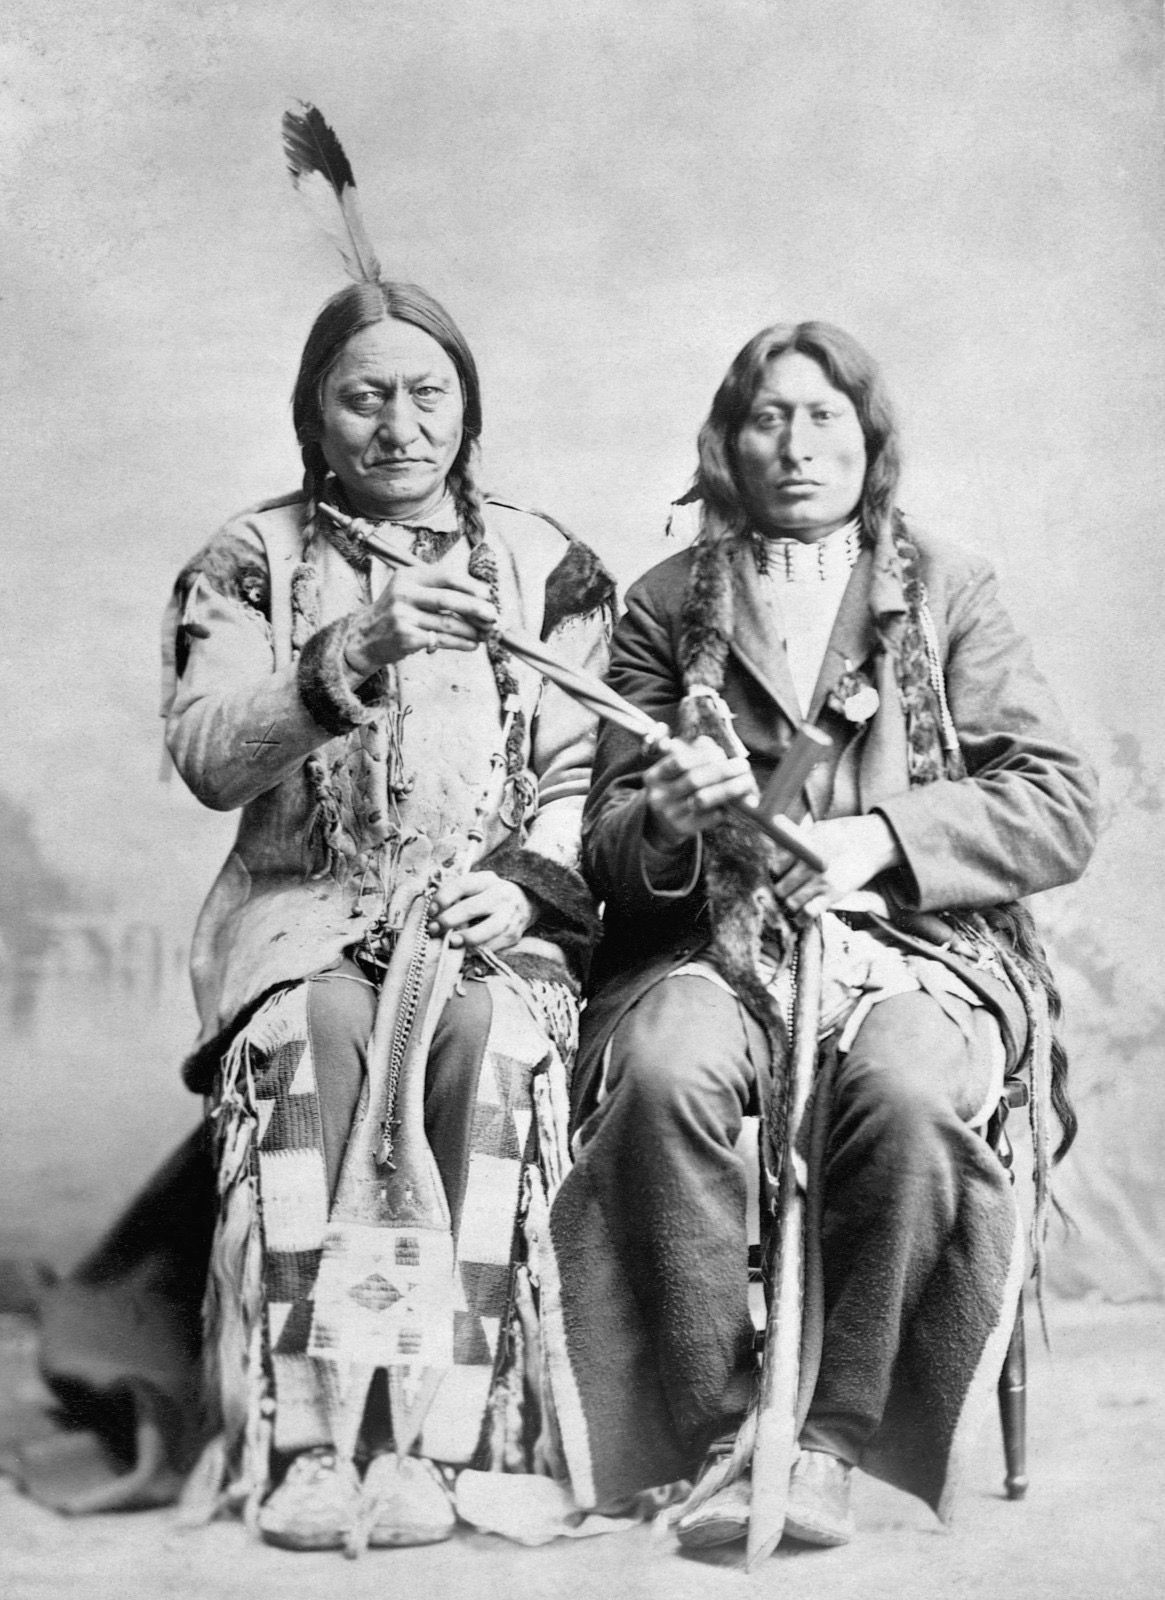 pin by jay harbison on vintage west pinterest native american